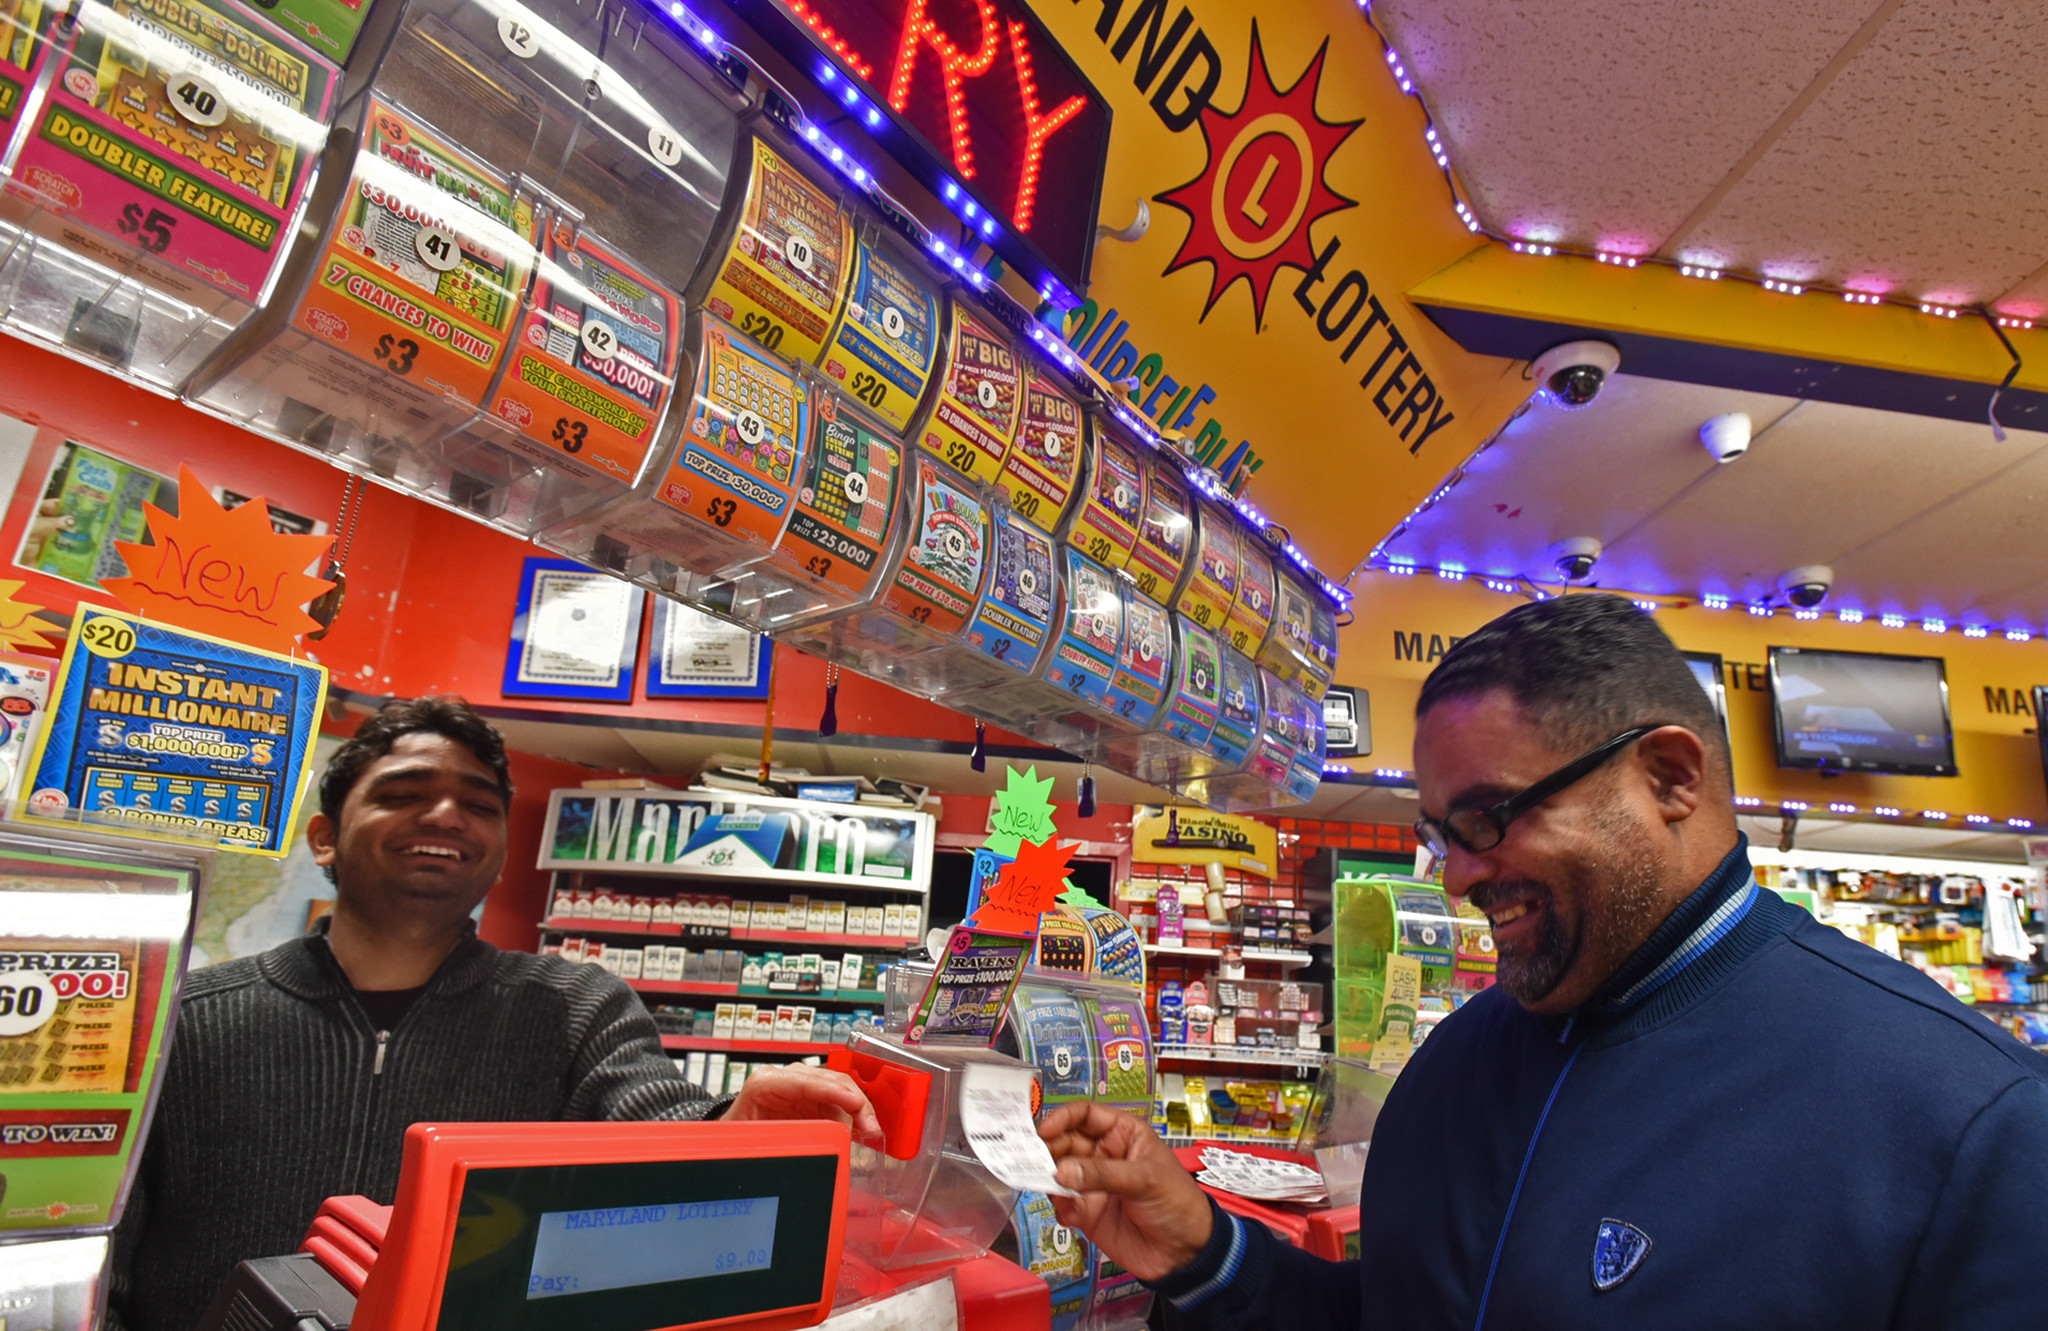 Statisticians Question Logic Of Buying Multiple Lottery